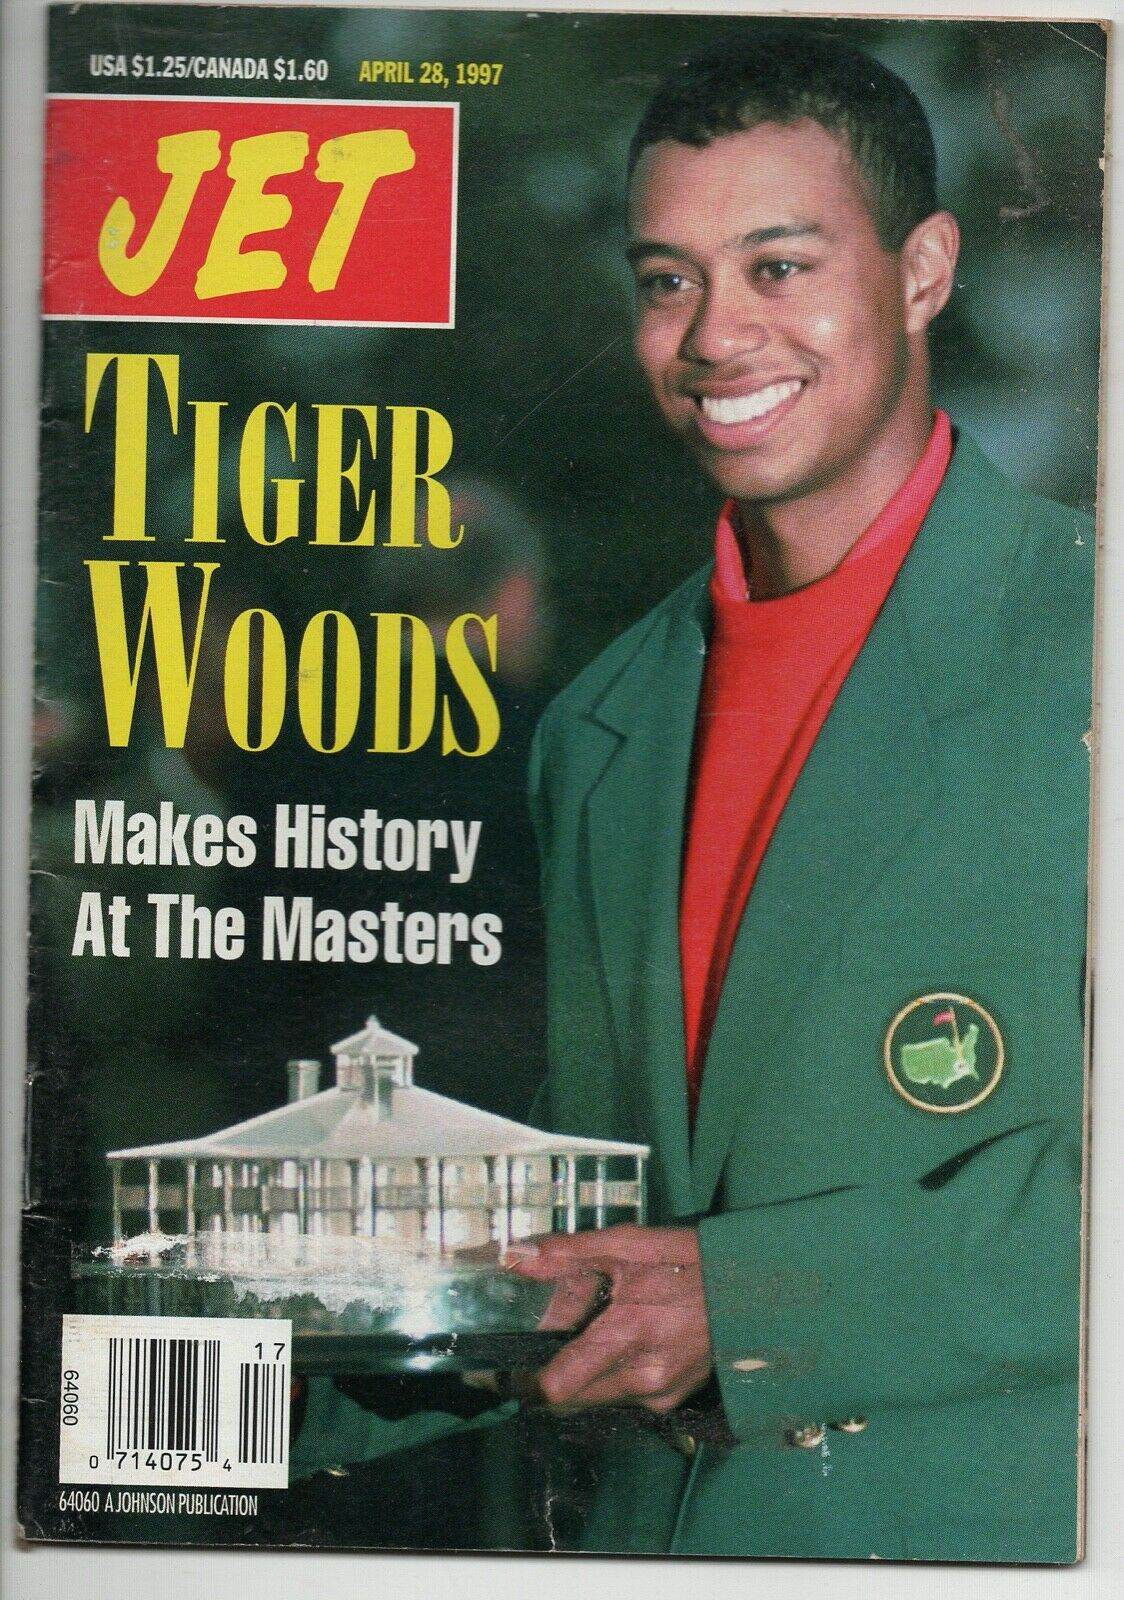 04 28 1997 Jet Magazine Tiger Woods